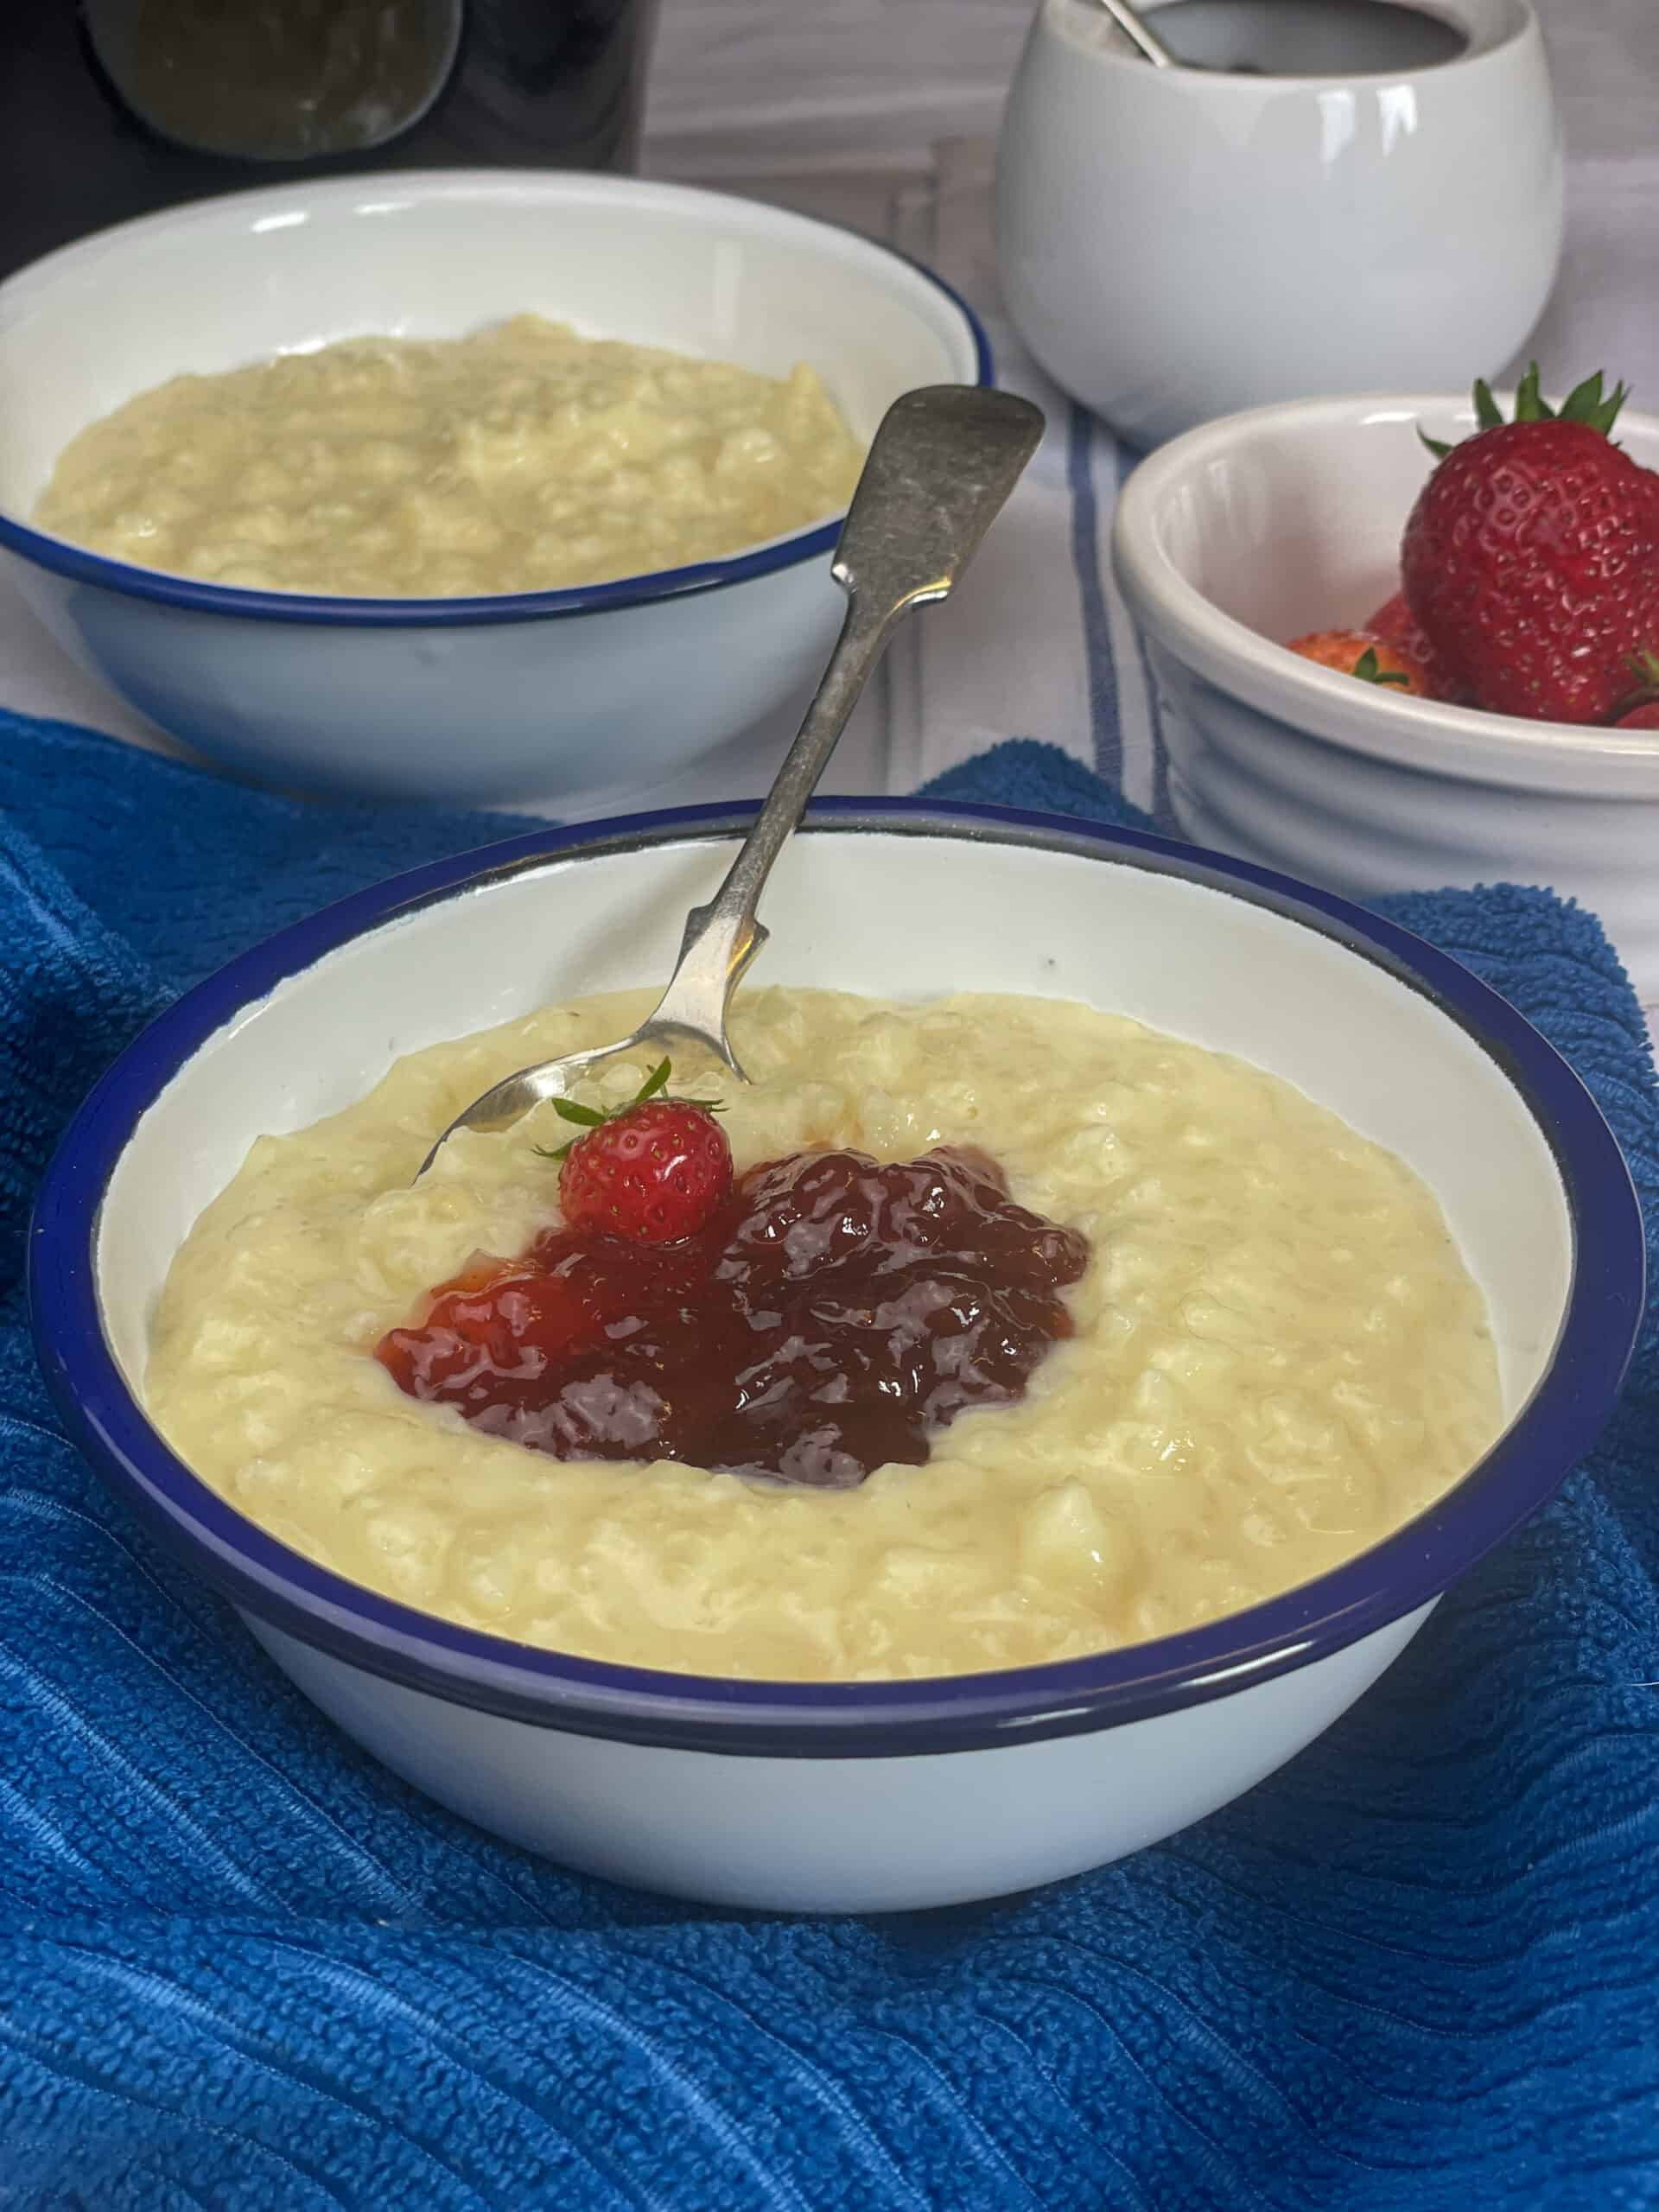 vegan slow cooker rice pudding served in enamel white bowls with small bowl of strawberries, and pot of jam in distance, blue background.